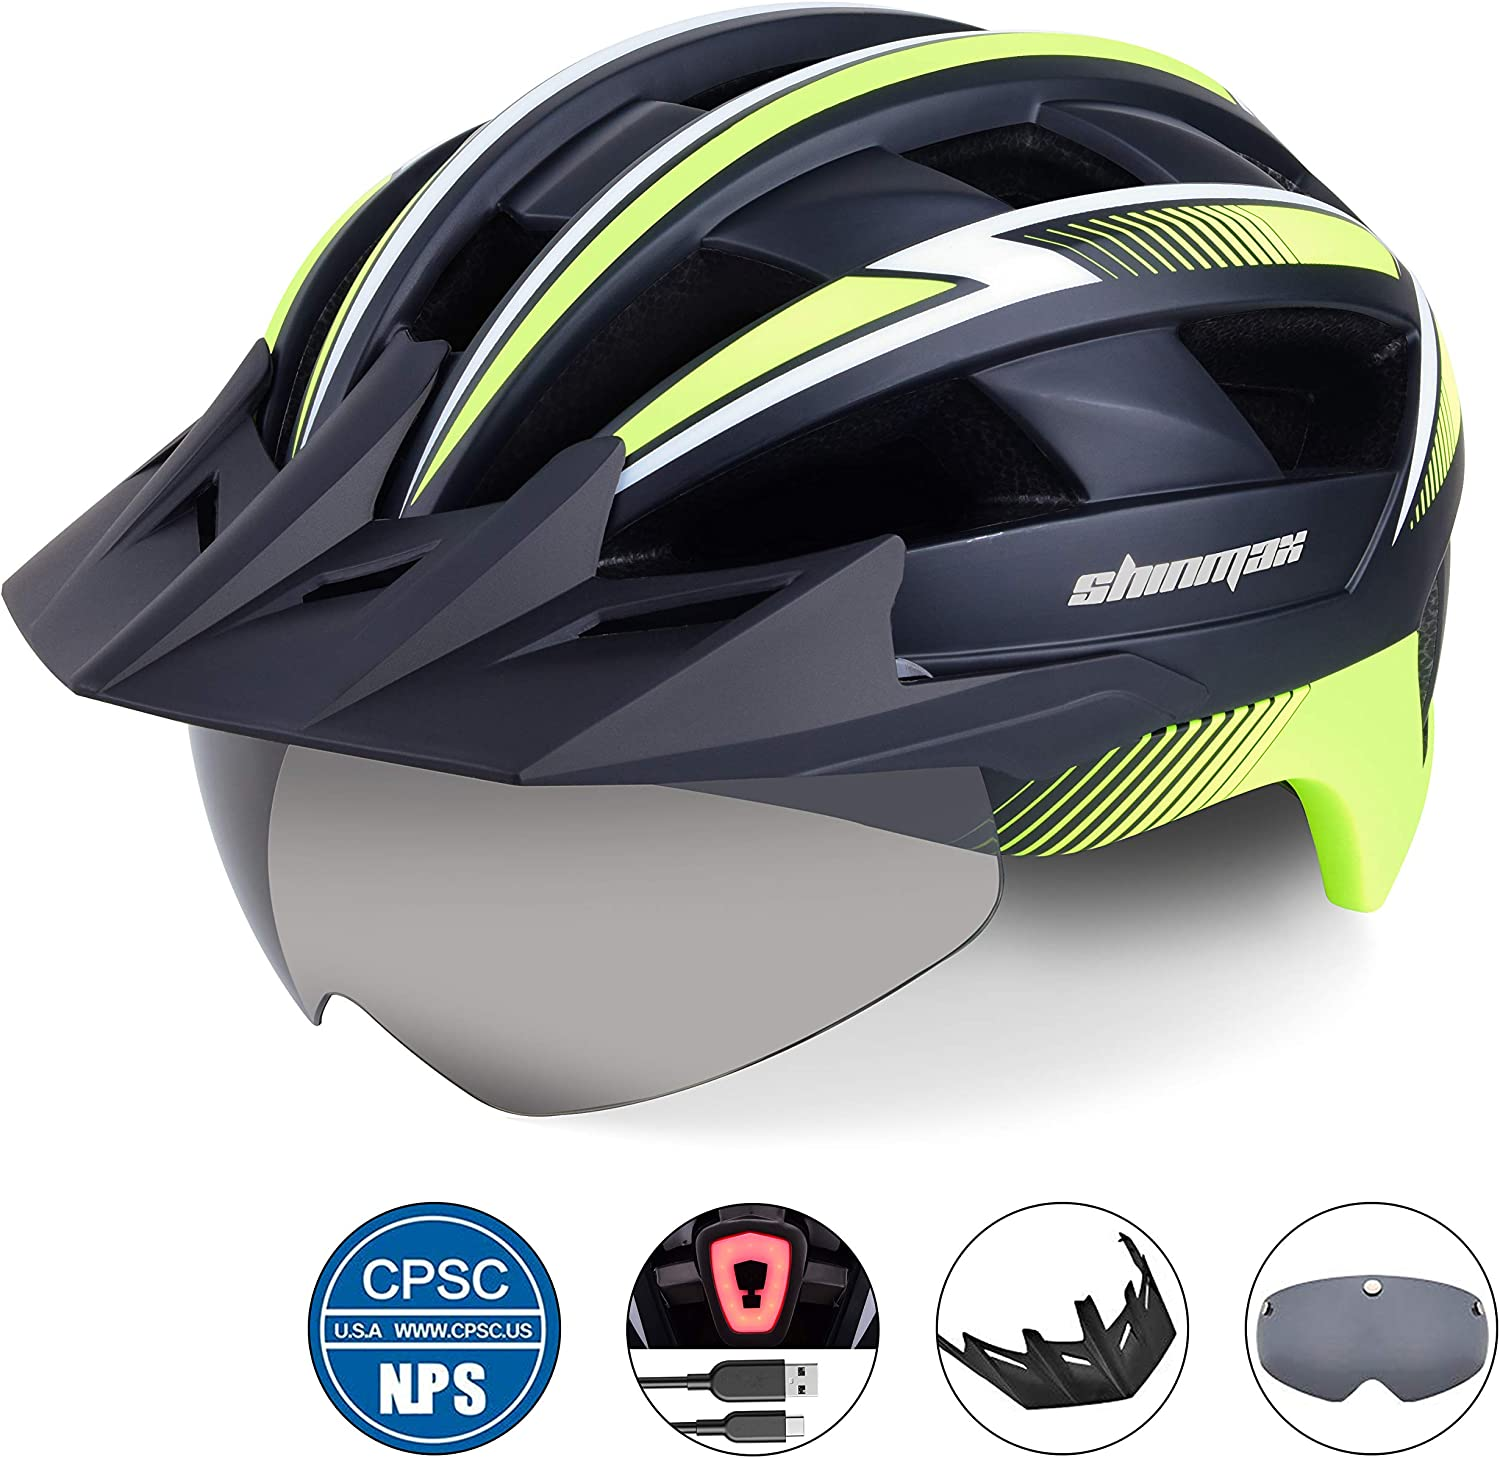 Shinmax Bike Helmet,Bicycle Helmet with USB Rechargeable LED Light CPSC Certified Adult Cycling Helmet//Adjustable Size Detachable Visor/&Removable Magnetic Goggles for Men Women Road Helmet SM-B23